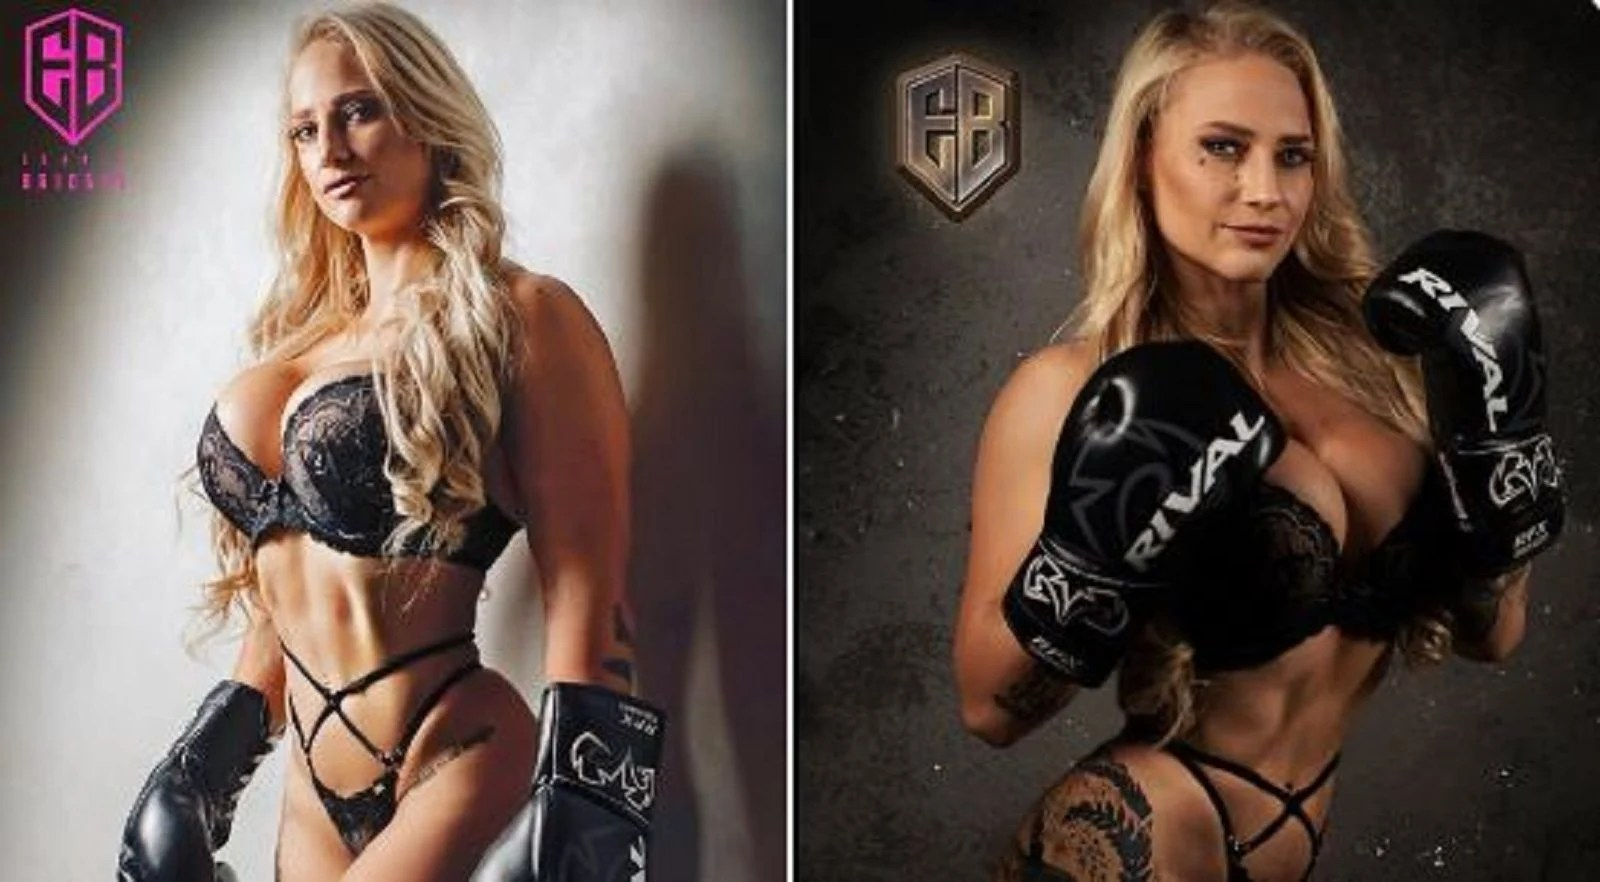 Blonde Bombshell Grabs Attention With Autographed New Photos